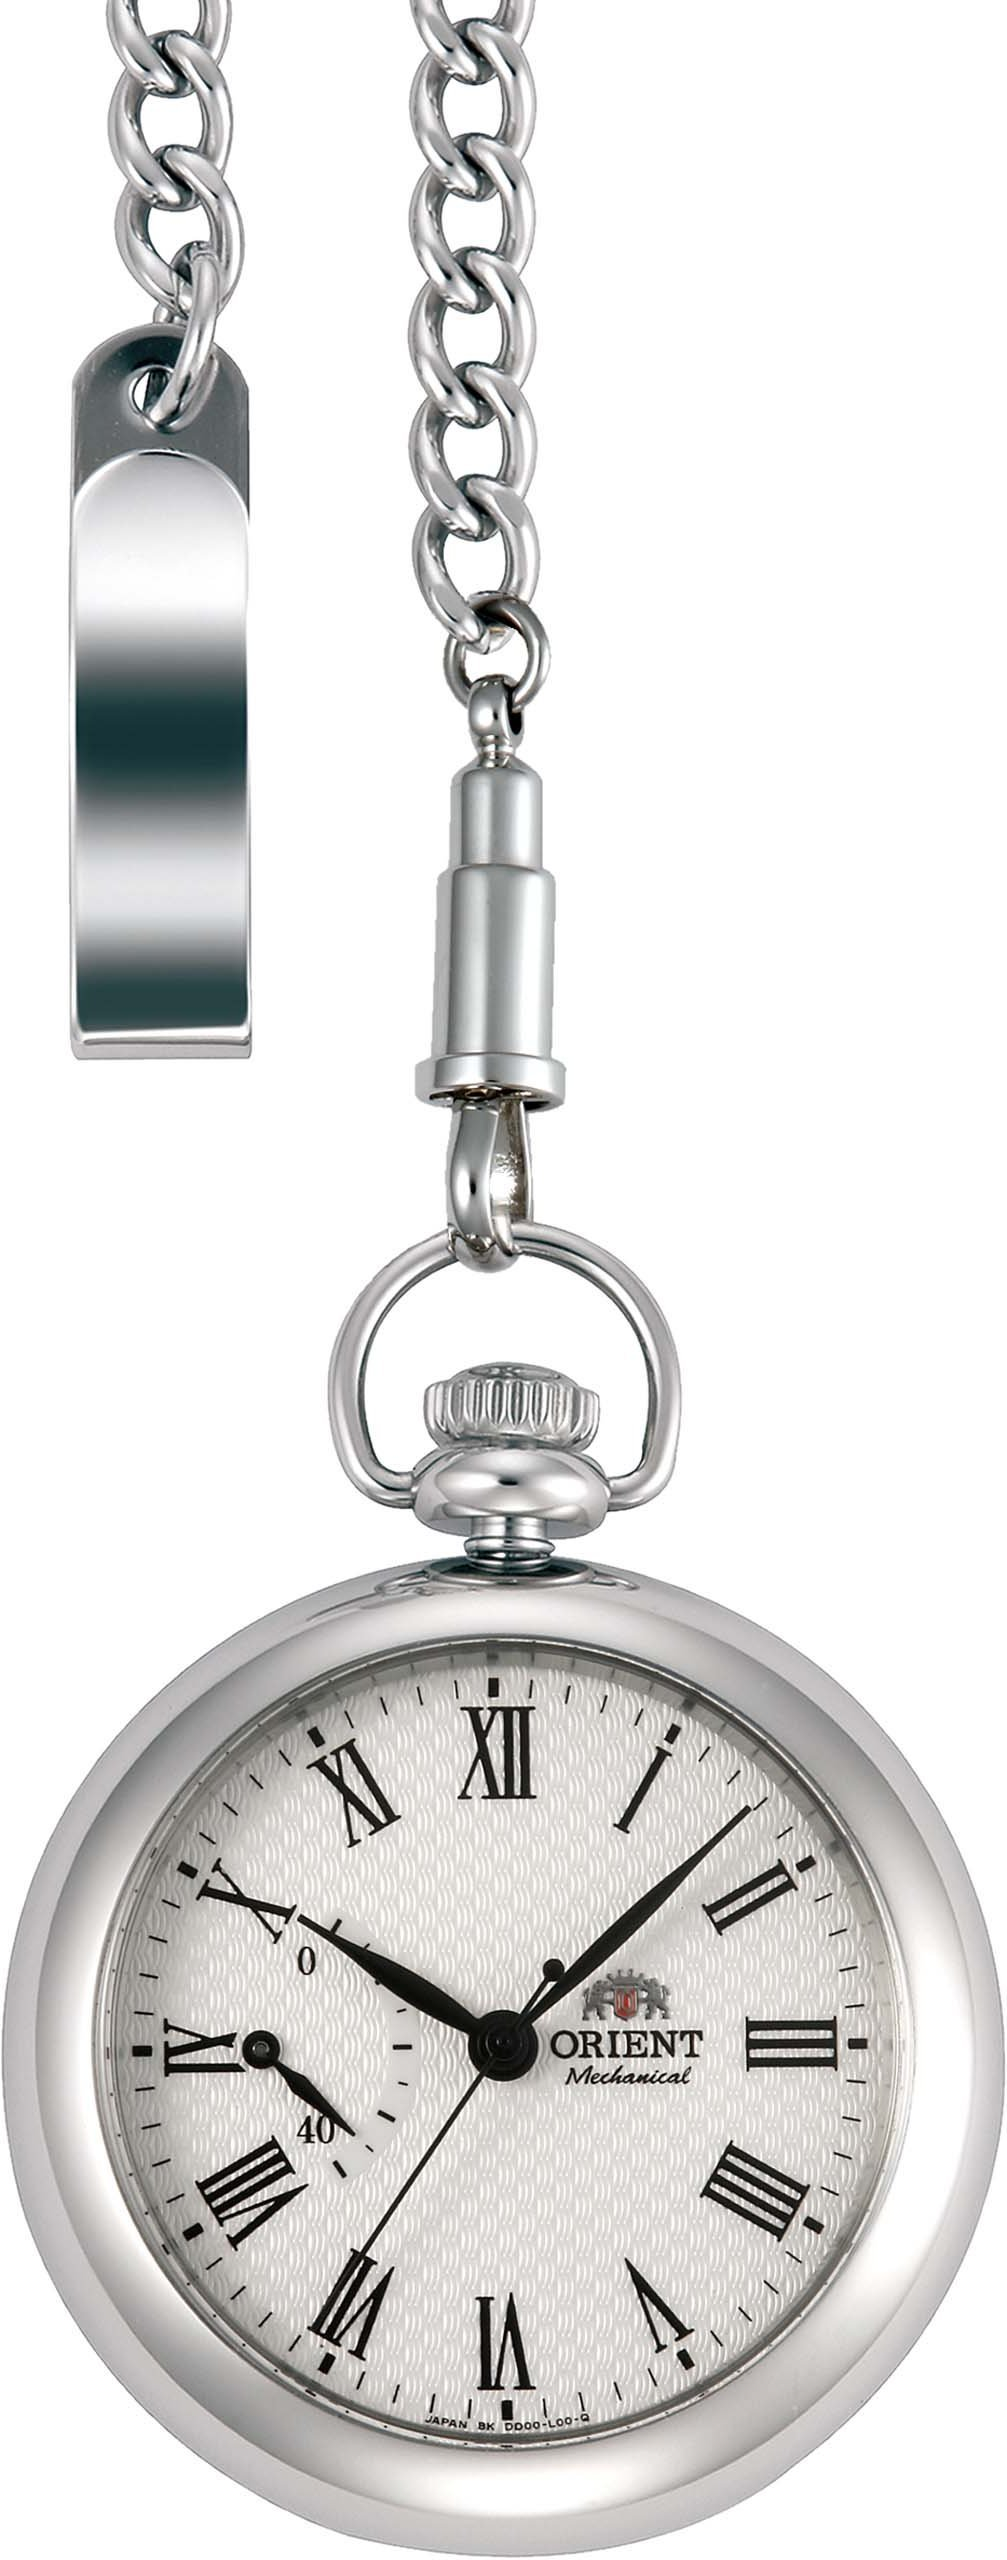 ORIENT WORLD STAGE Collection pocket watch hand winding sapphire glass WV0031DD by Orient